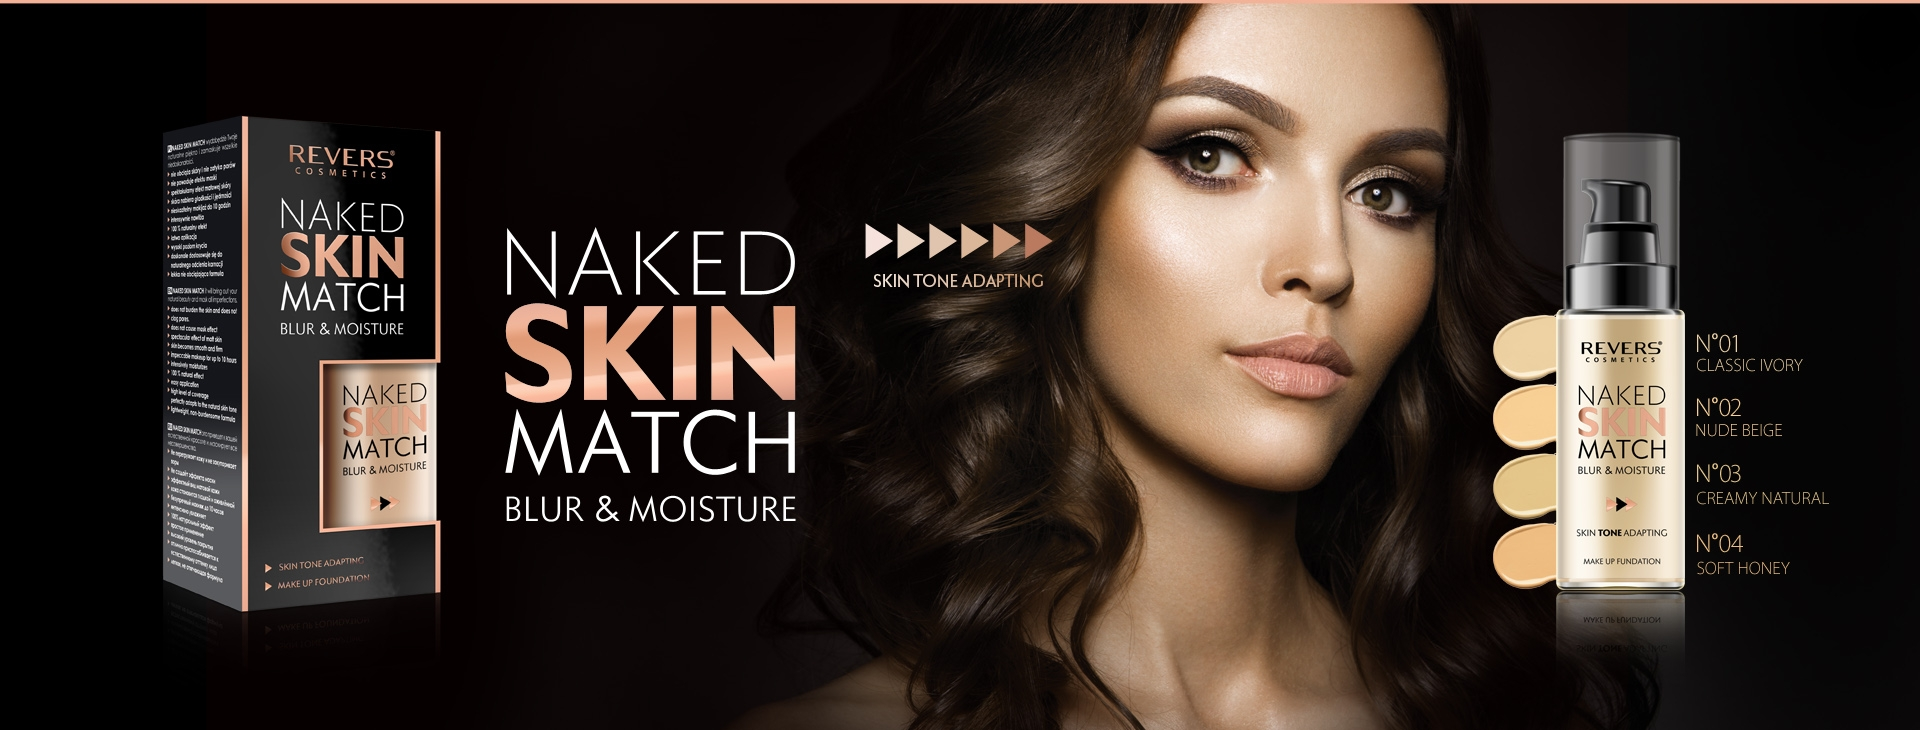 slide /fotky4730/slider/521973259d99f494b4815bb400c0609be0a0bbaa_Naked-20skin-20match-201920-20x-20730-20wer1.jpg